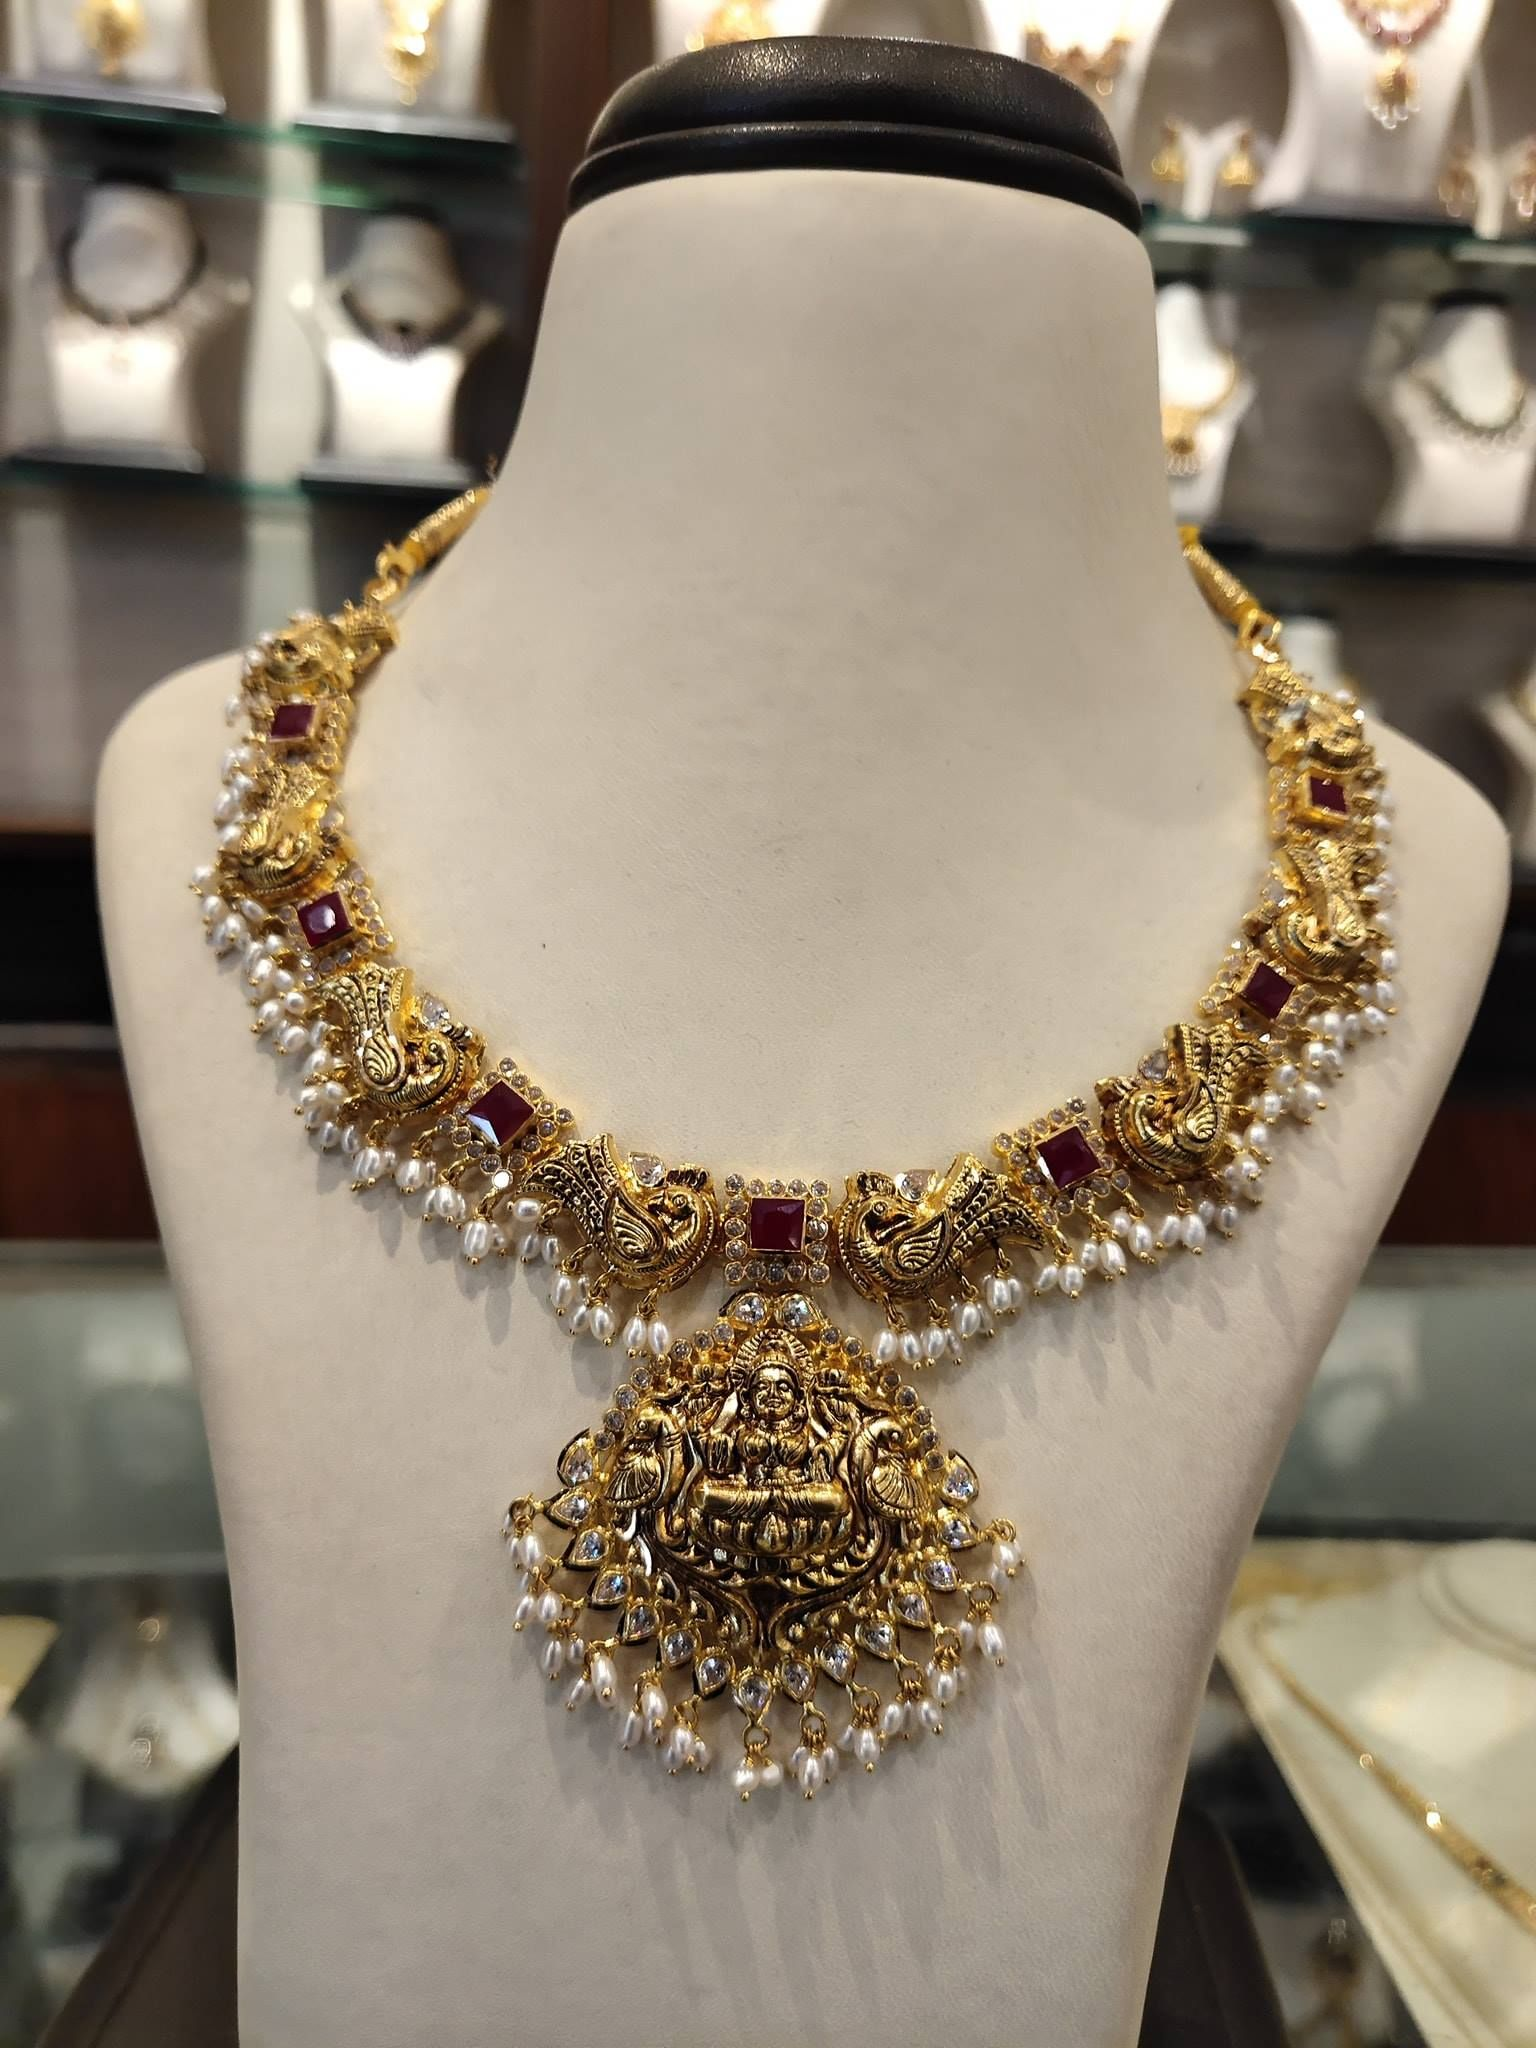 06f34c5c39f Stunning gold necklace in dancing peacock design. Necklace with Lakshmi  devi pendant. Necklace with rice pearl hangings. 17 August 2018. Light  weight ...